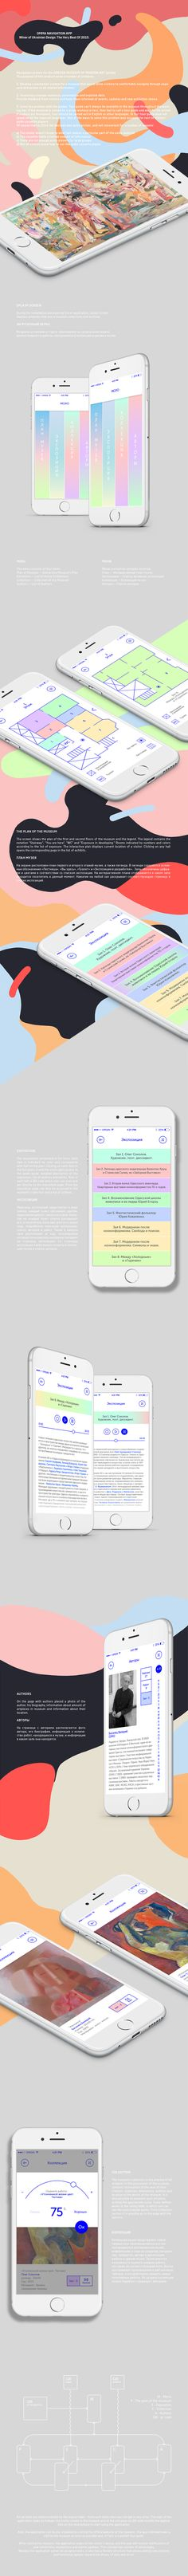 OMMA navigation App on Behance